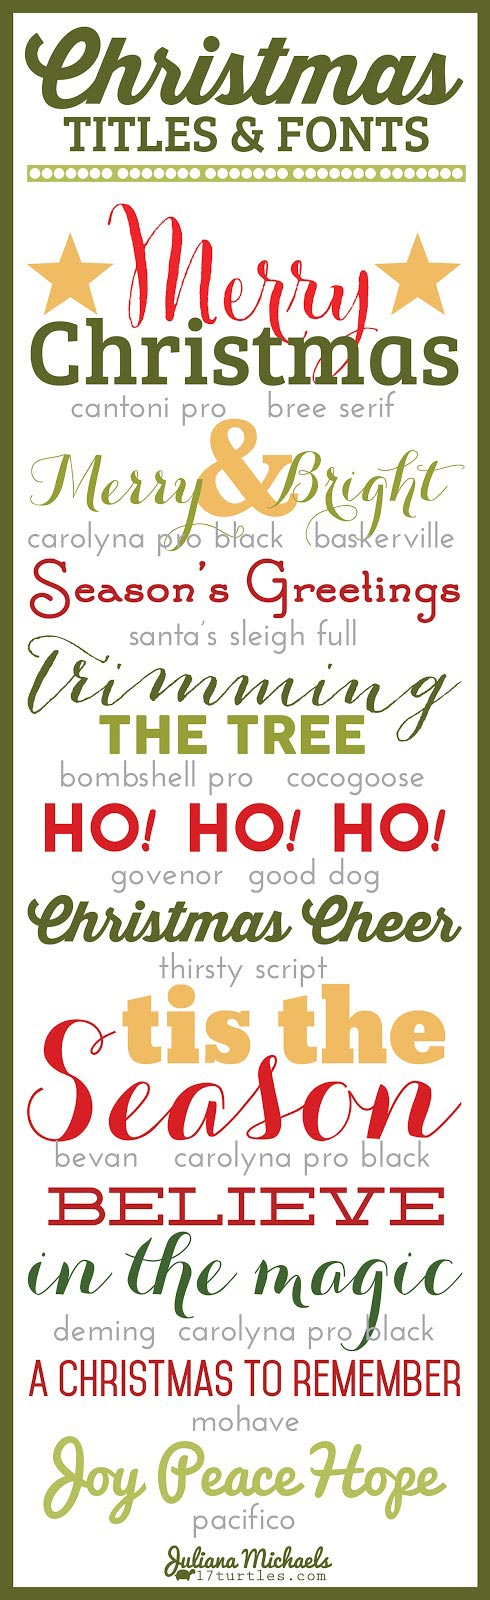 141217-Christmas_Titles_And_Fonts